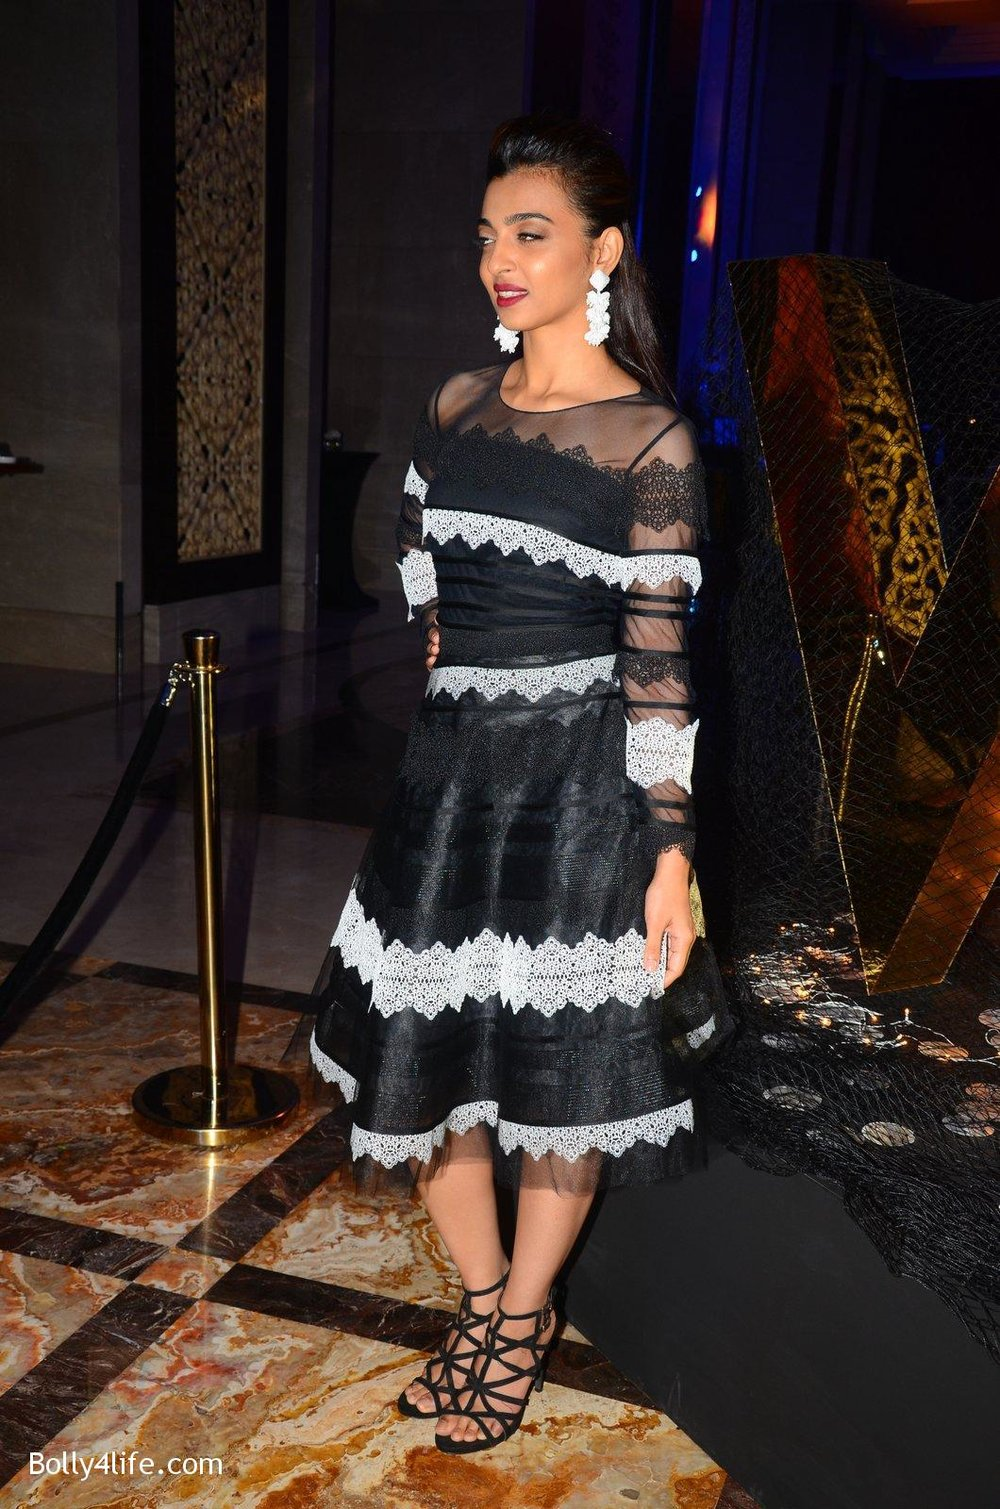 Radhika-Apte-at-W-Goa-launch-party-on-7th-Oct-2016-99.jpg